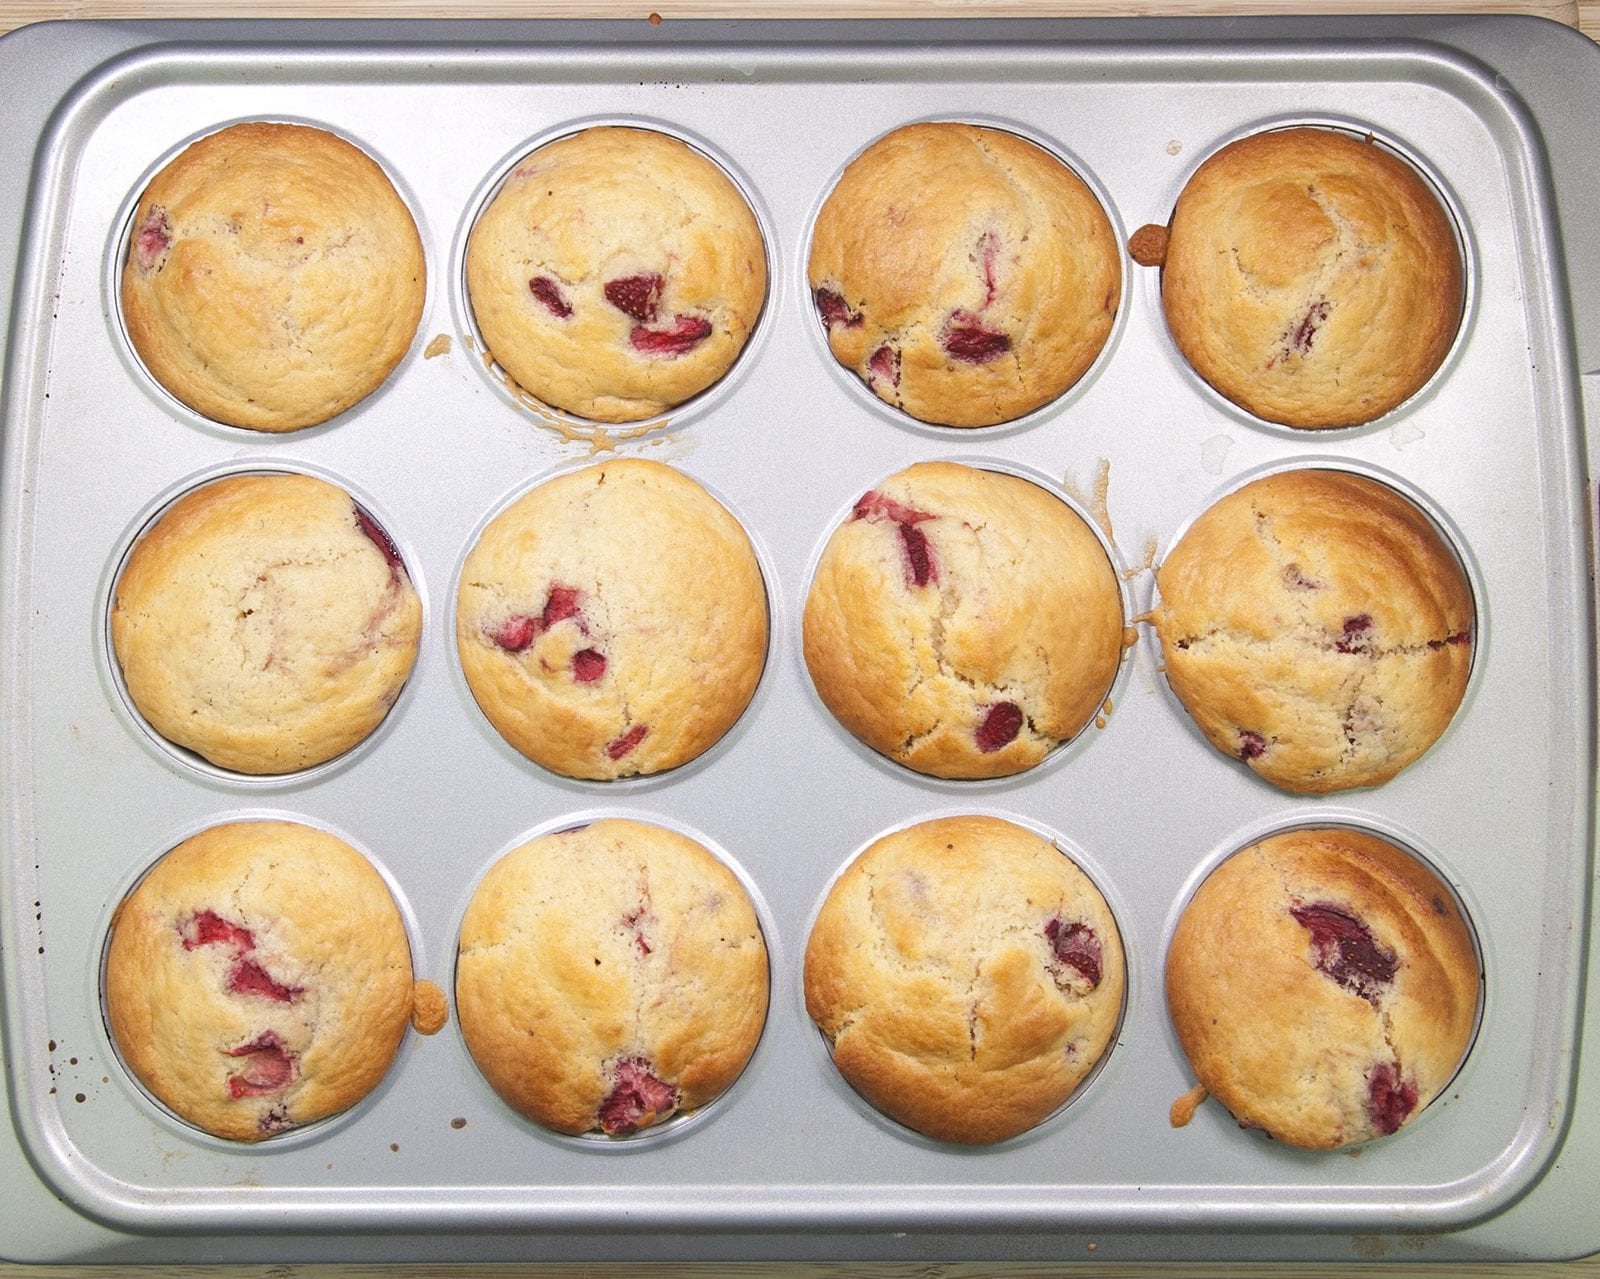 Strawberry muffins. Yum! Whether it's breakfast, mid-morning coffee or afternoon tea munching on these strawberry muffins will get you through the day 😋 | theyumyumclub.com